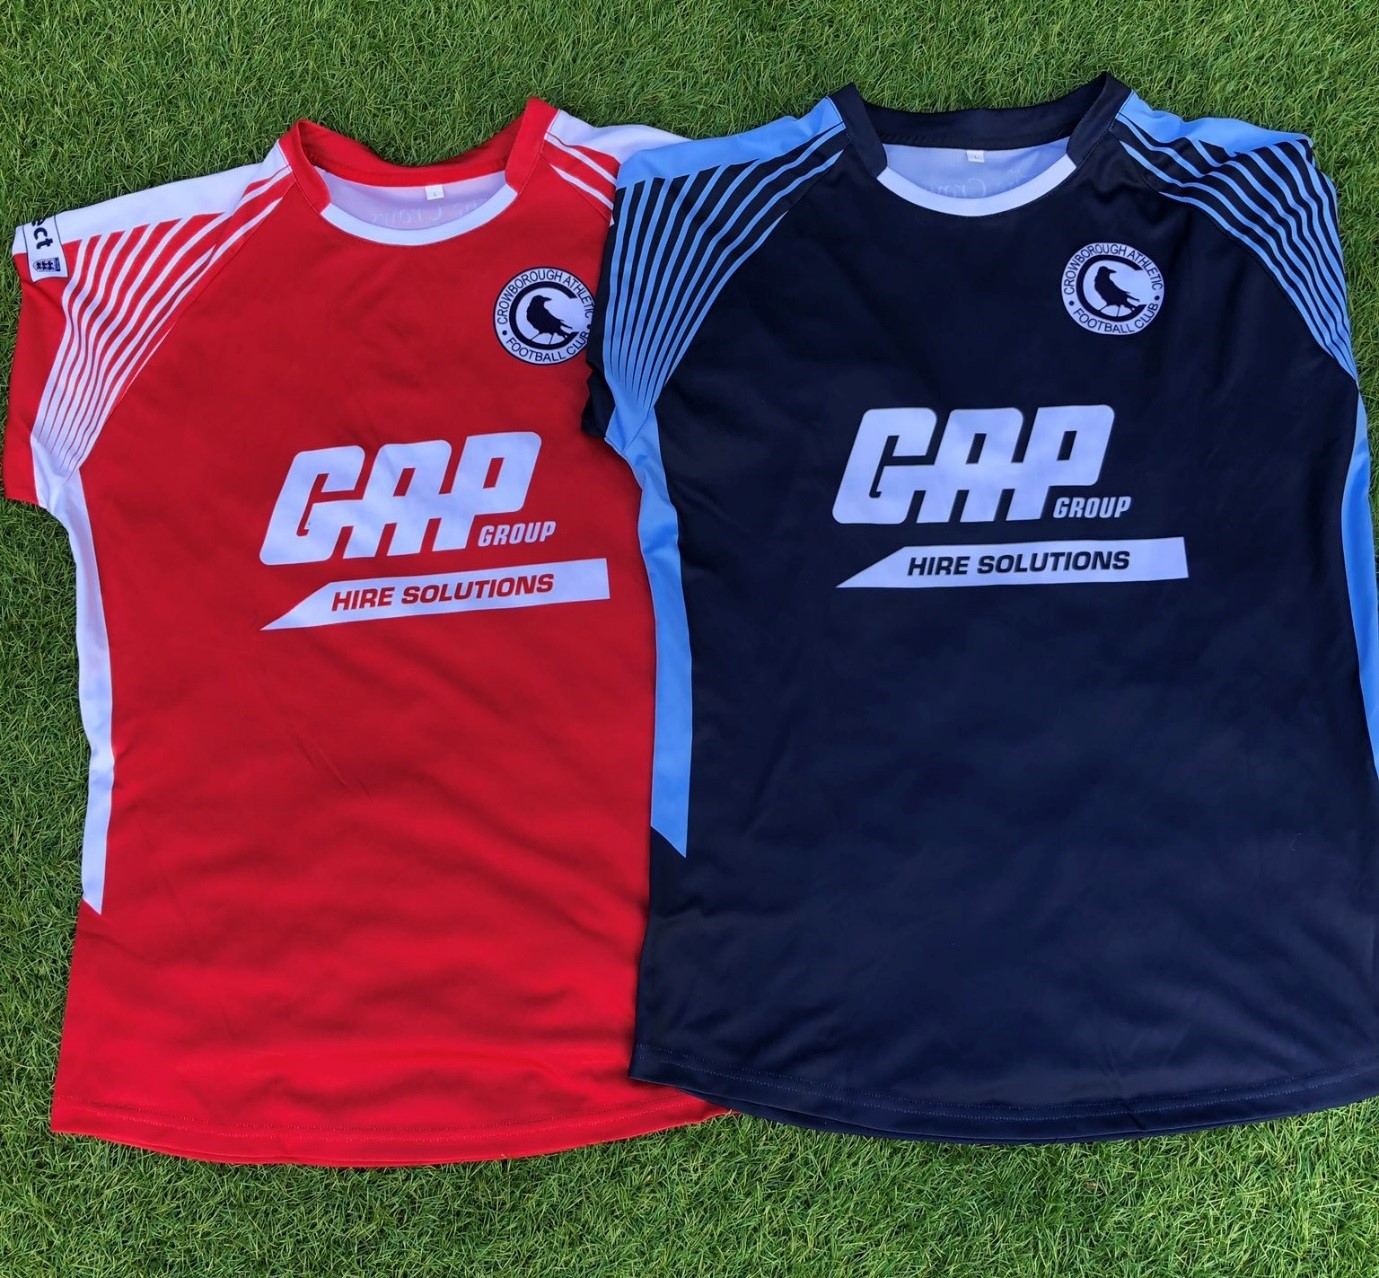 Crowborough Athletic FC's brand-spanking new kit for the 2019 2020 season